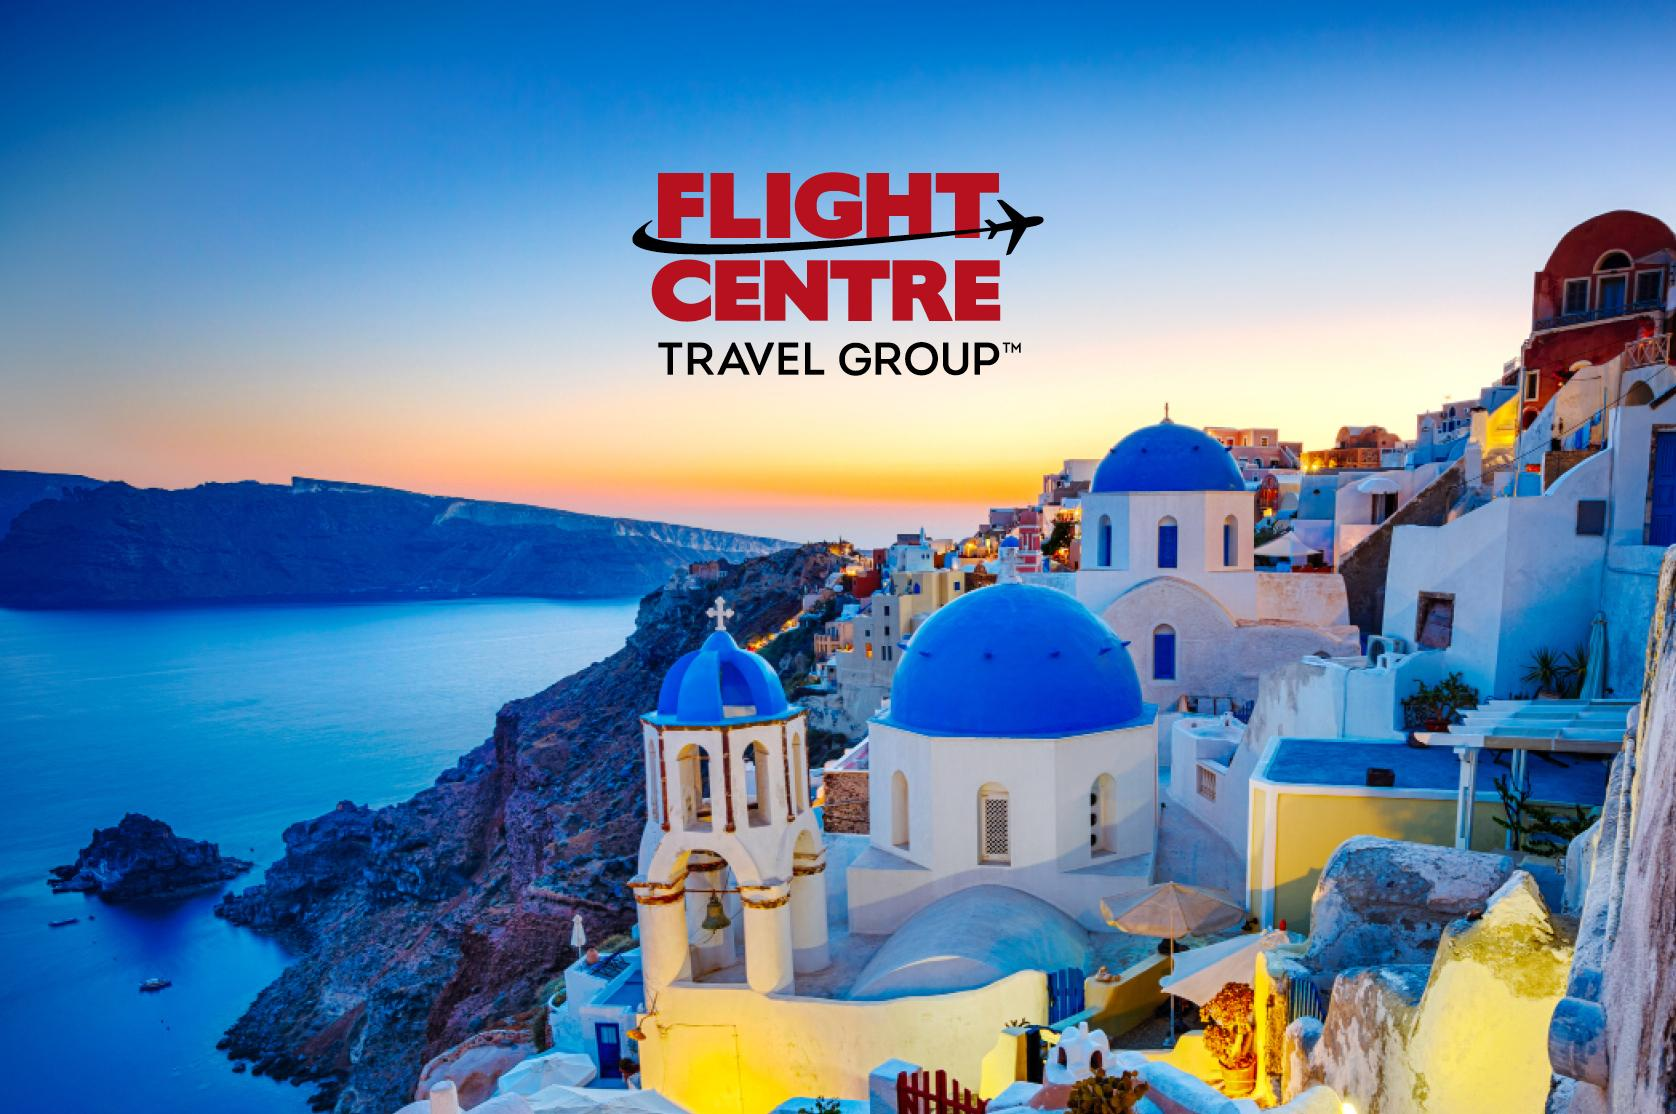 Our Flight Centre travel brands